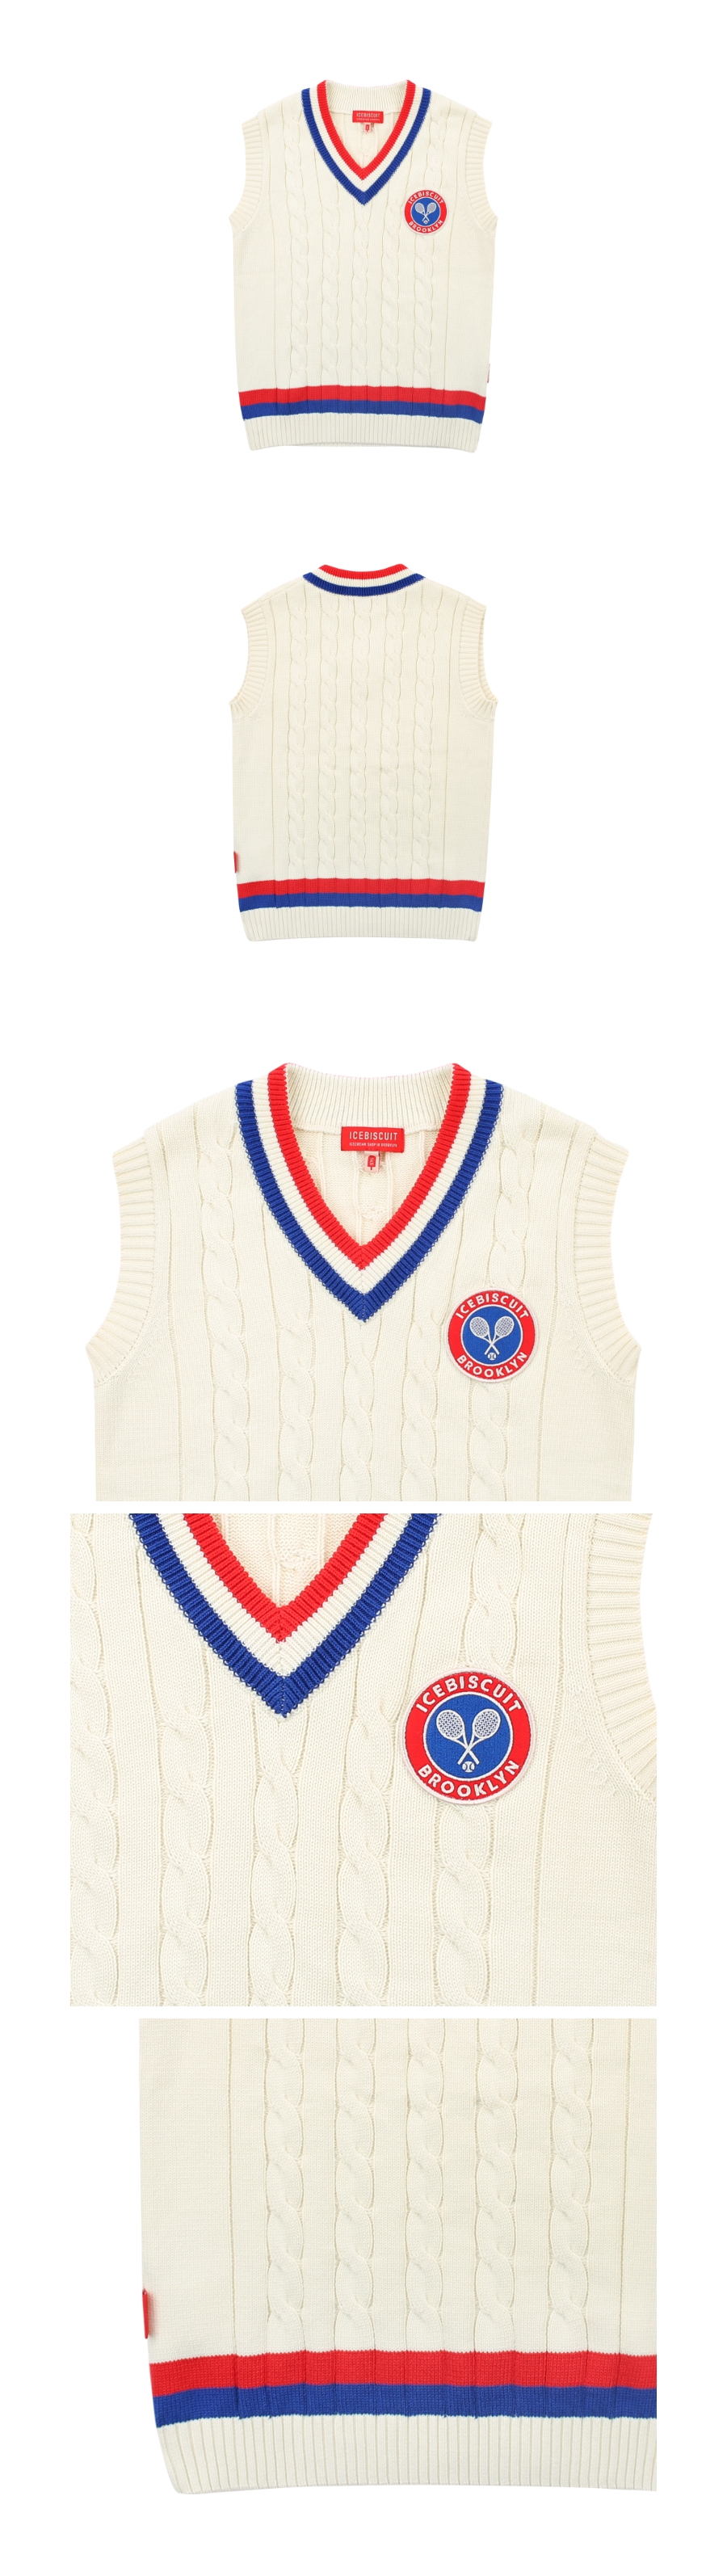 Icebiscuit tennis emblem cable sweater vest 상세 이미지